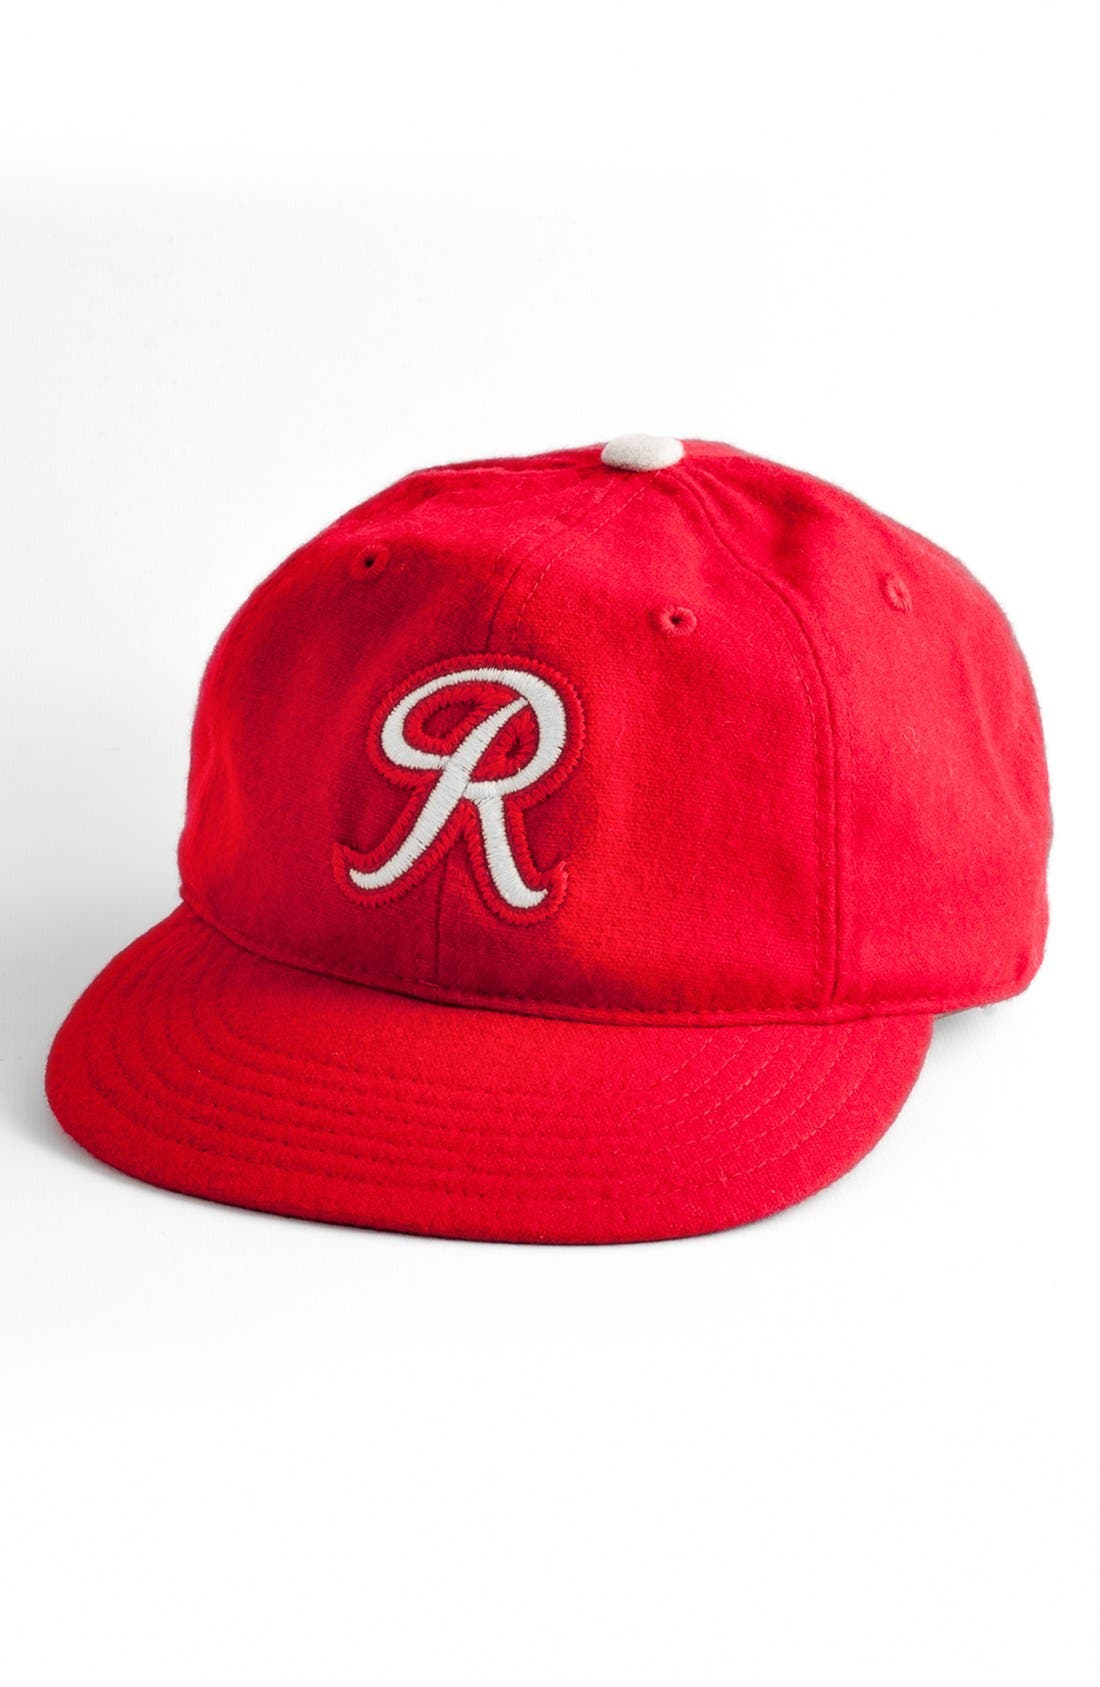 Main Image - American Needle 'Seattle Rainiers - Statesman' Baseball Cap